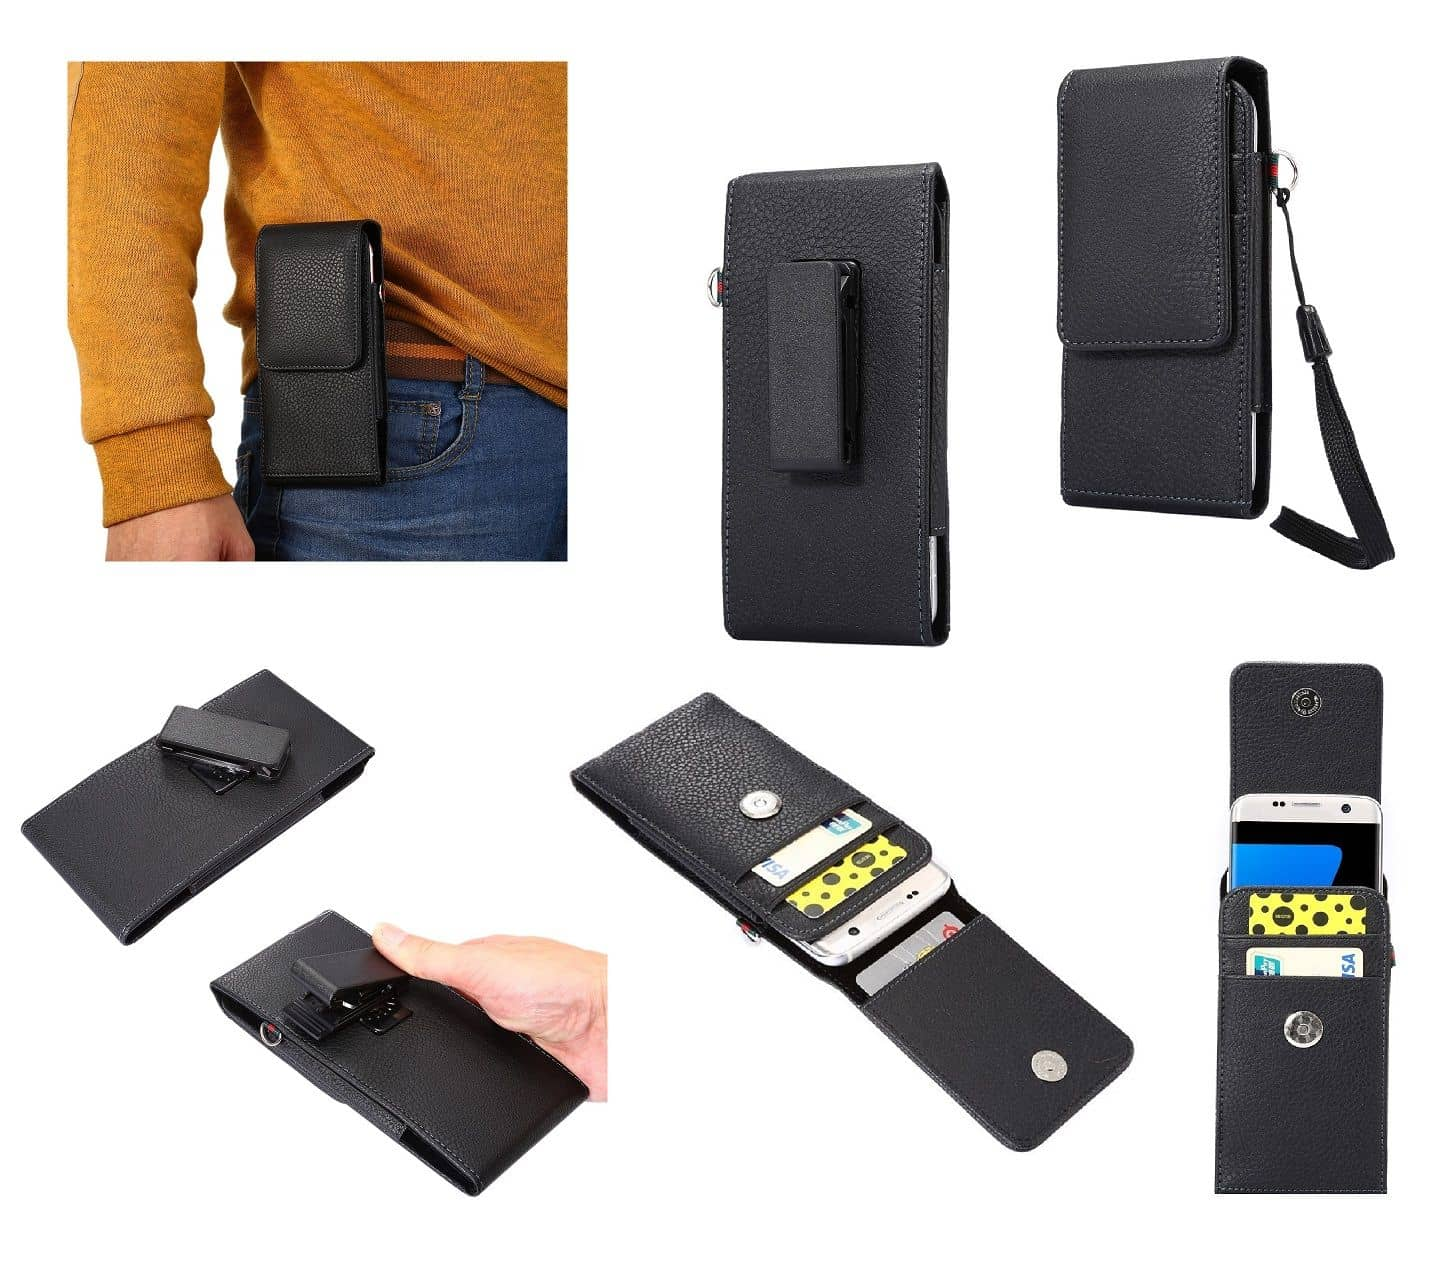 Magnetic leather Holster Card Holder Case belt Clip Rotary 360 for HTC Wildfire R70 (2020) - Black